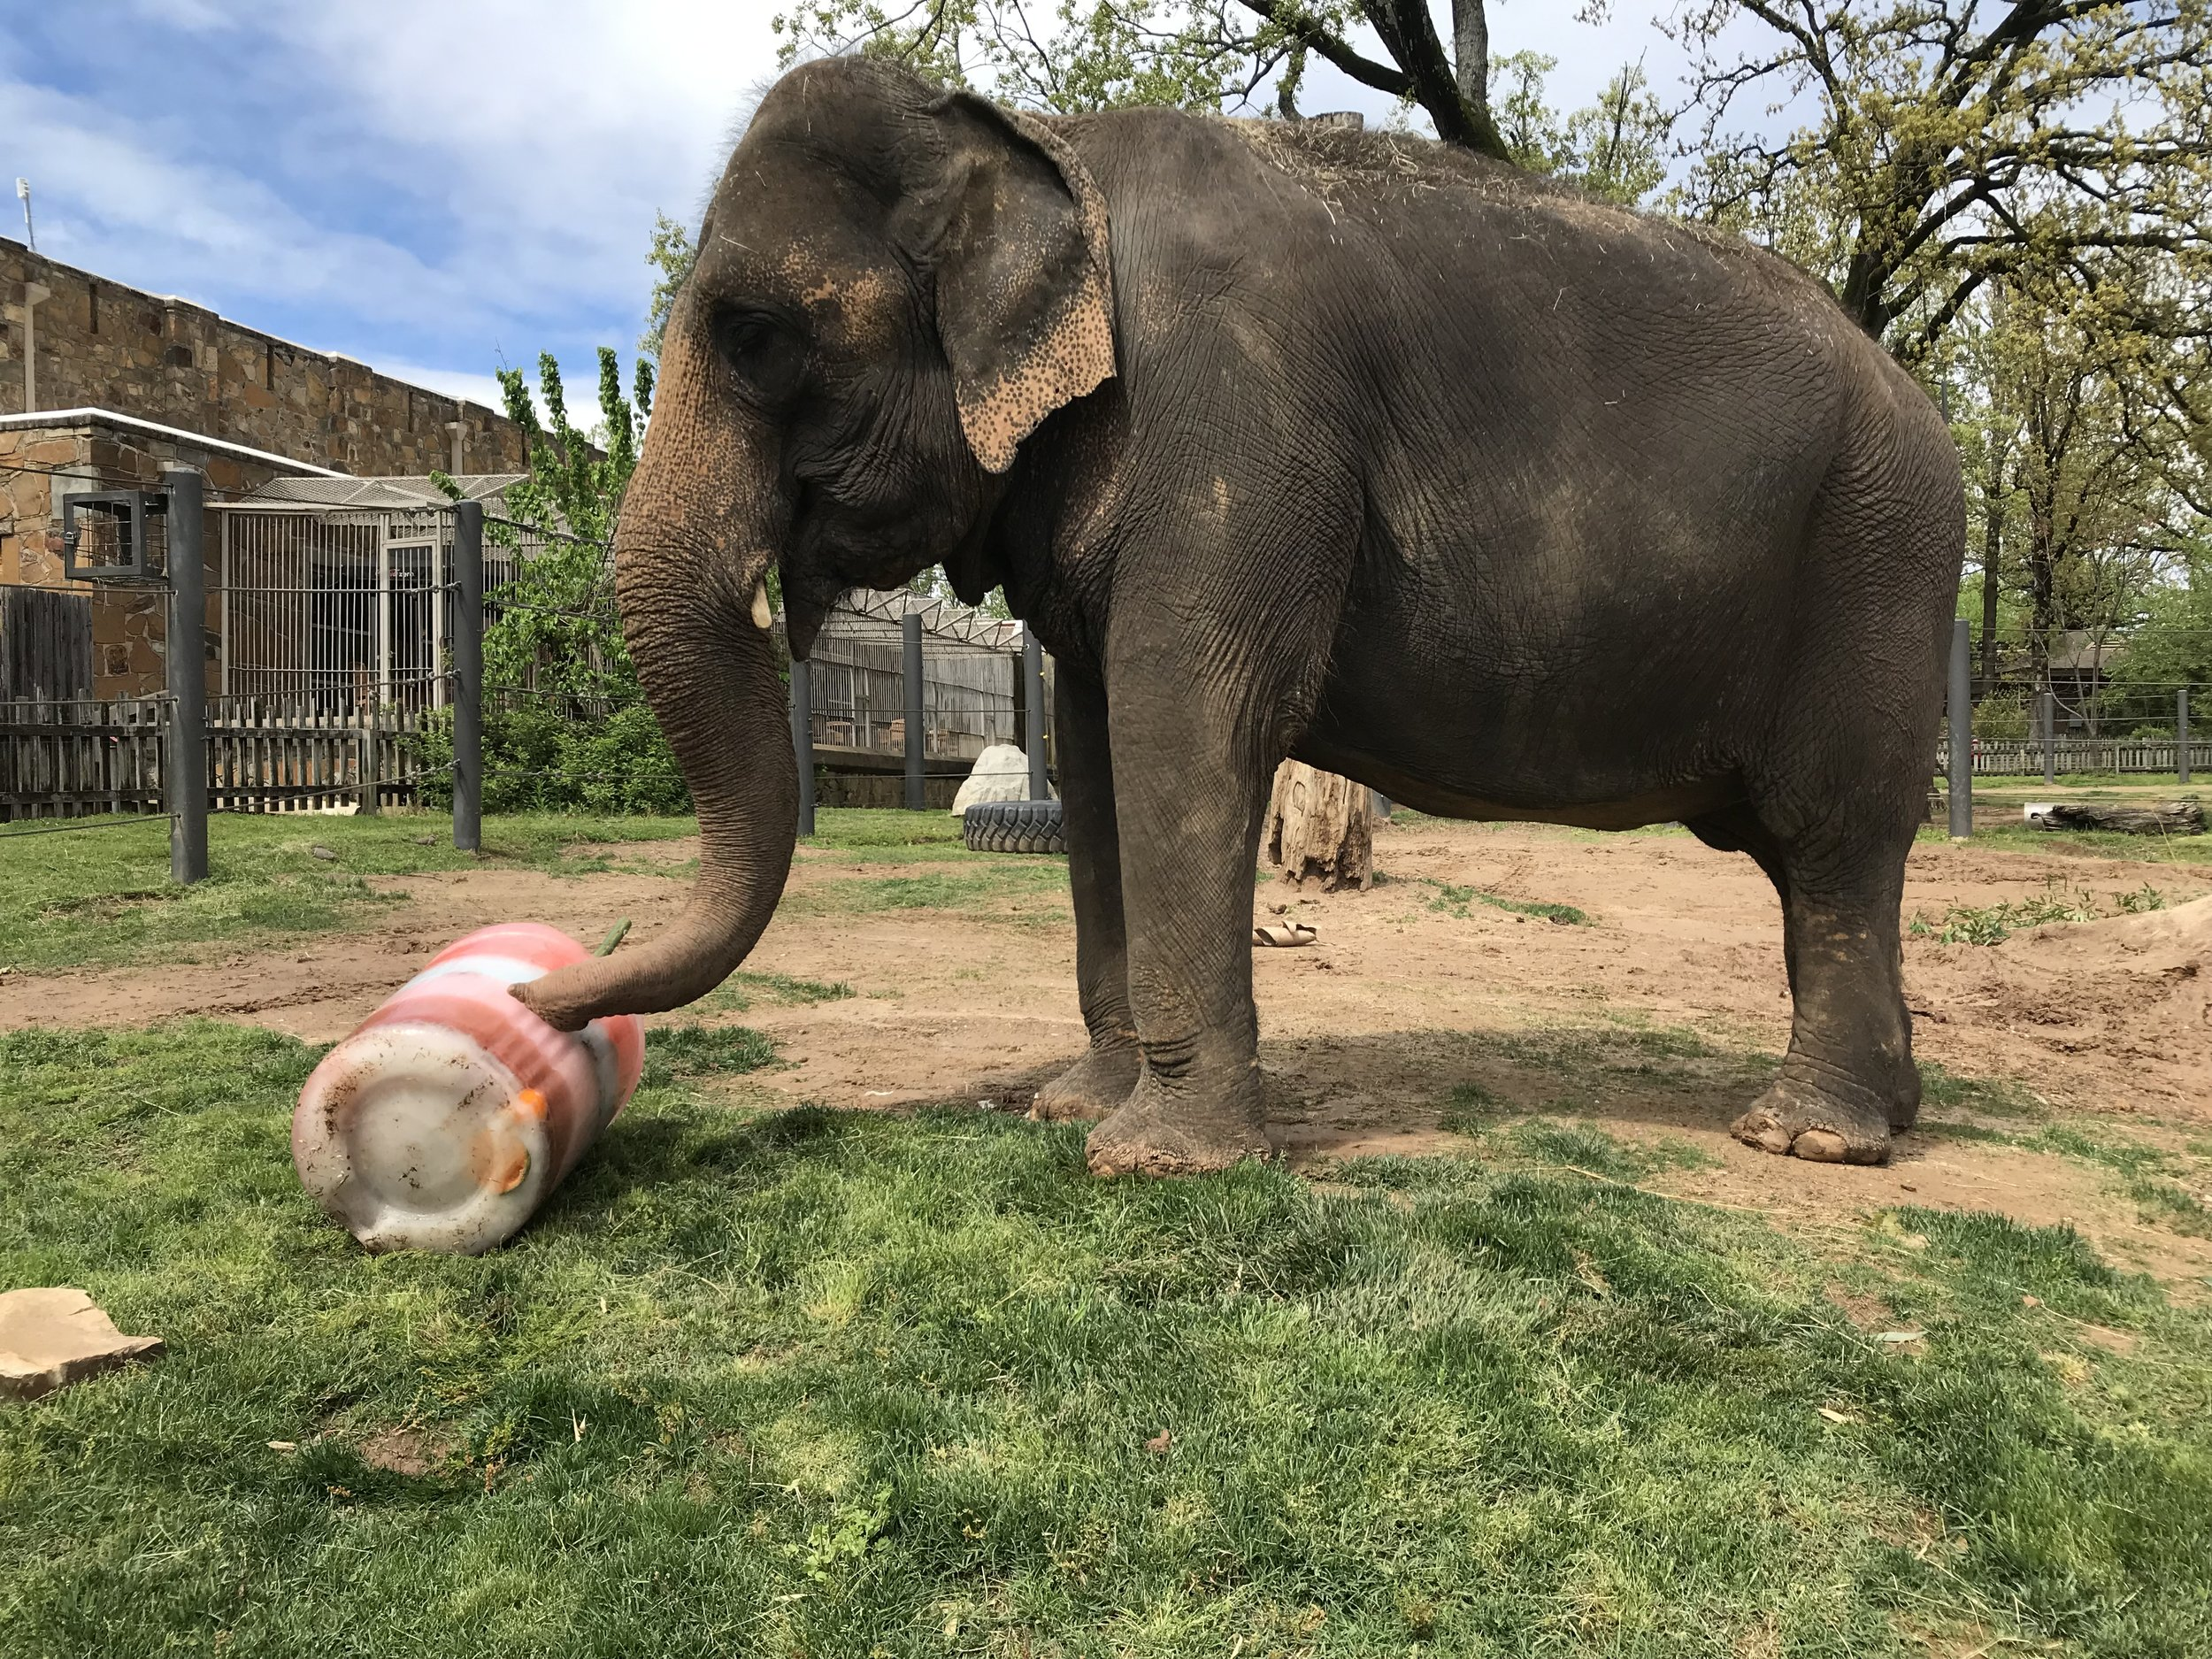 Little Rock Zoo celebrates Sophie while raising funds for AES